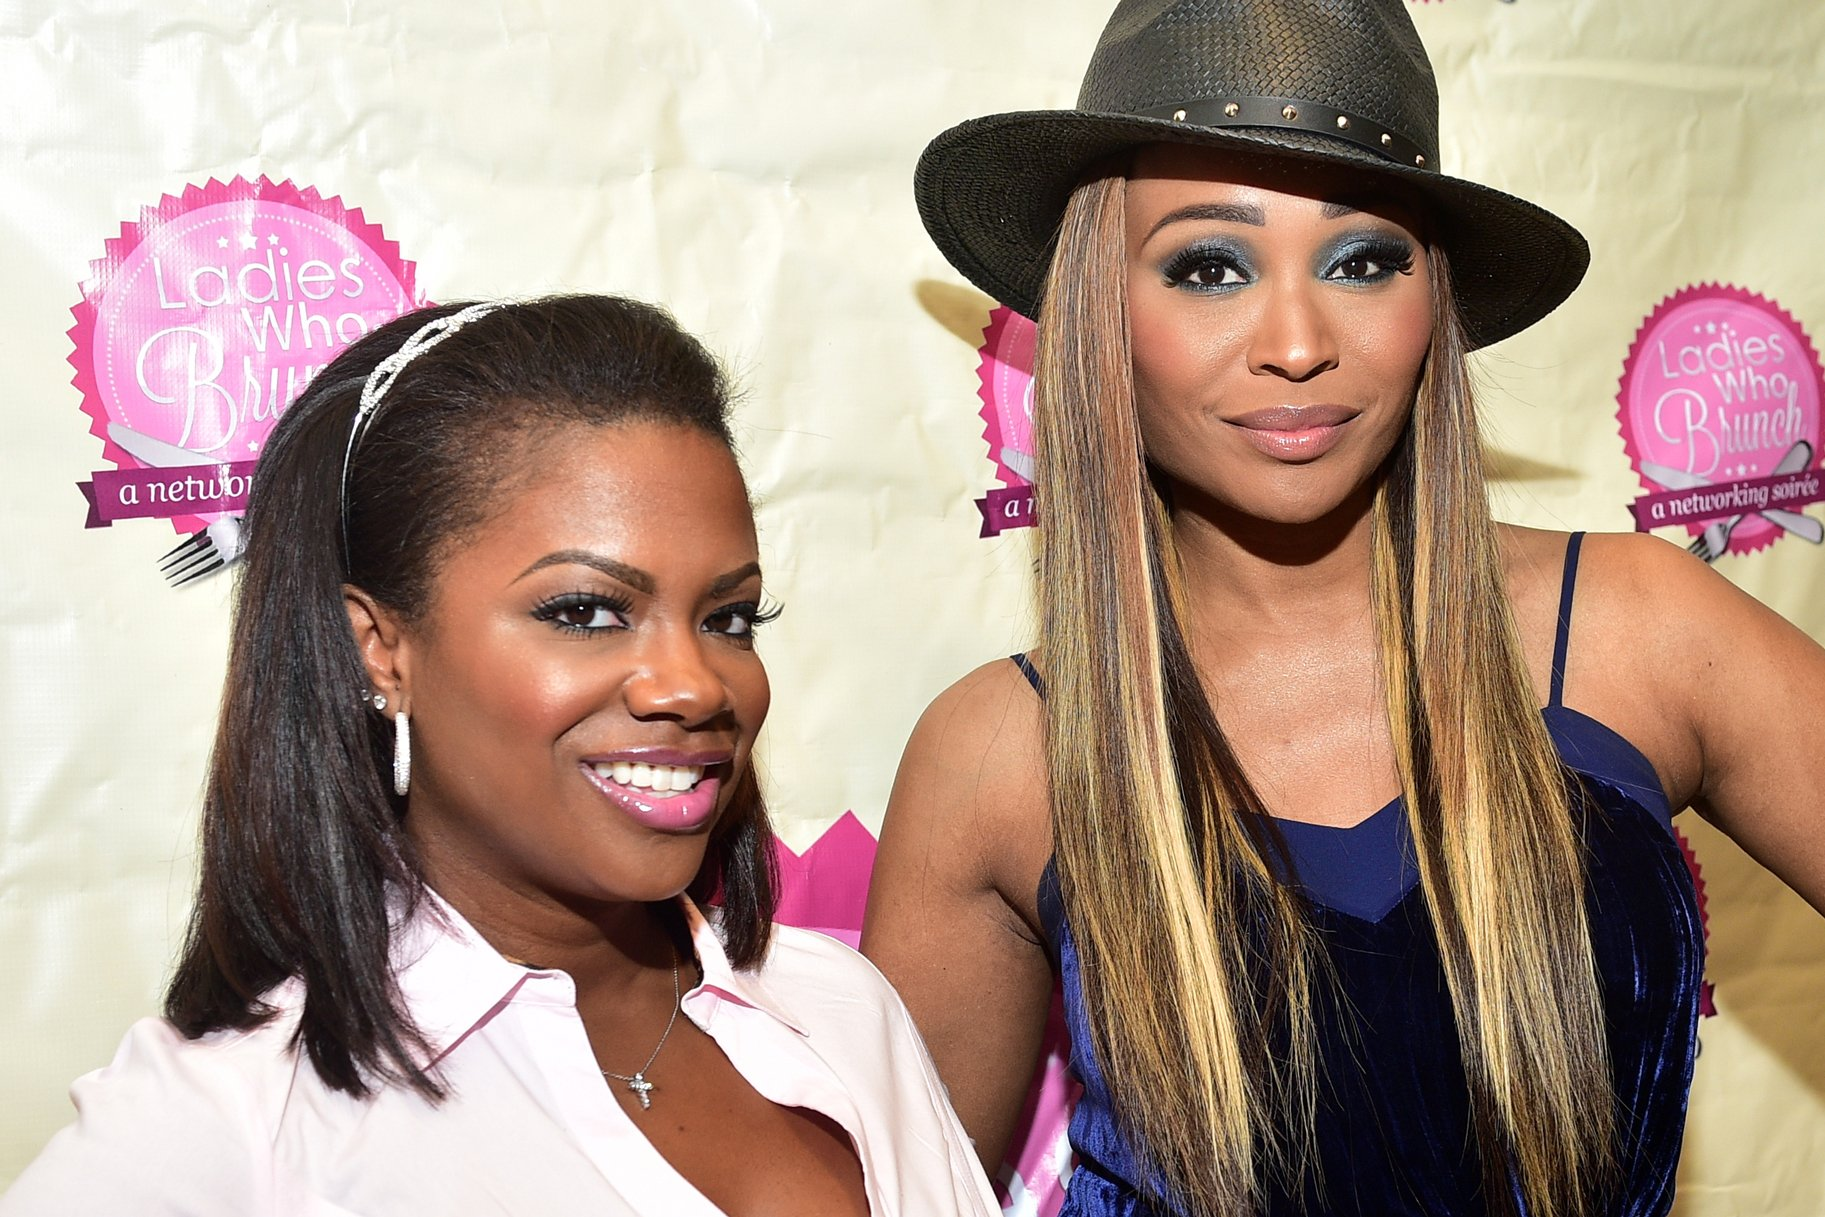 Kandi Burruss And Cynthia Bailey Hang Out At The Screening Of Fatale Movie Together – Check Out Their Photo